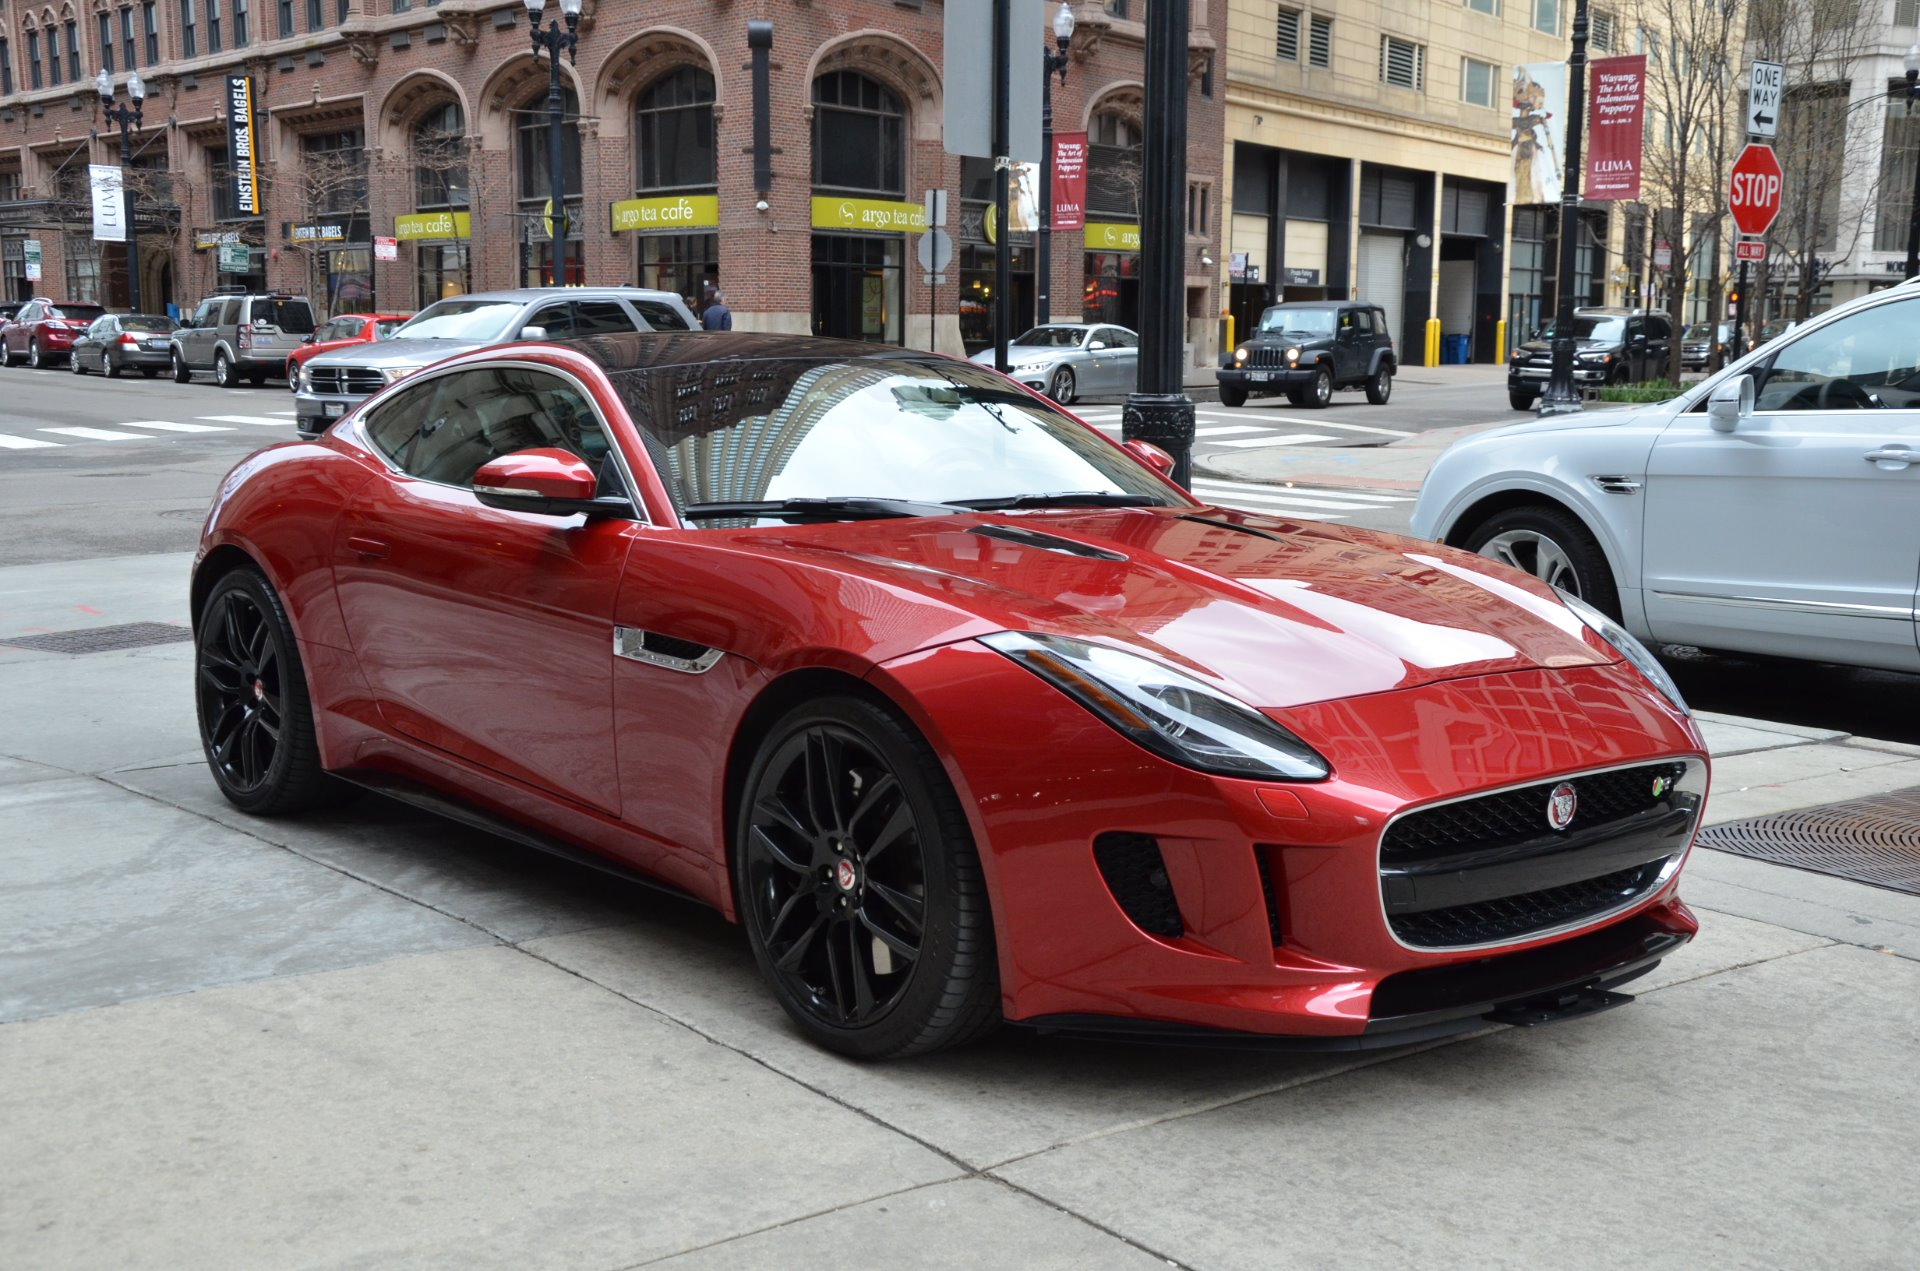 2015 jaguar f type r stock b912a for sale near chicago il il jaguar dealer. Black Bedroom Furniture Sets. Home Design Ideas